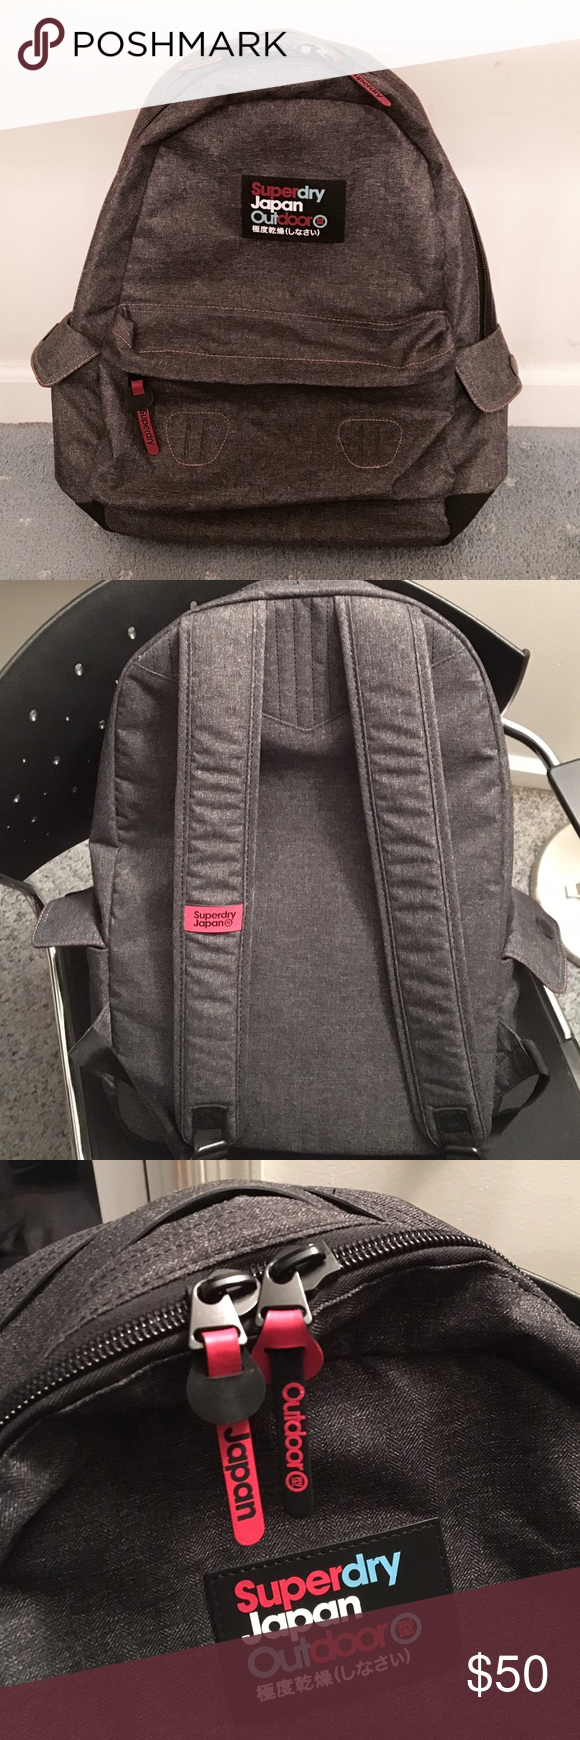 ad703dcf82 Superdry Japan Outdoor Waterproof Backpack Superdry Japan Outdoor  Waterproof Backpack. In like like-new condition. Purchased from a Superdry  shop in NYC.